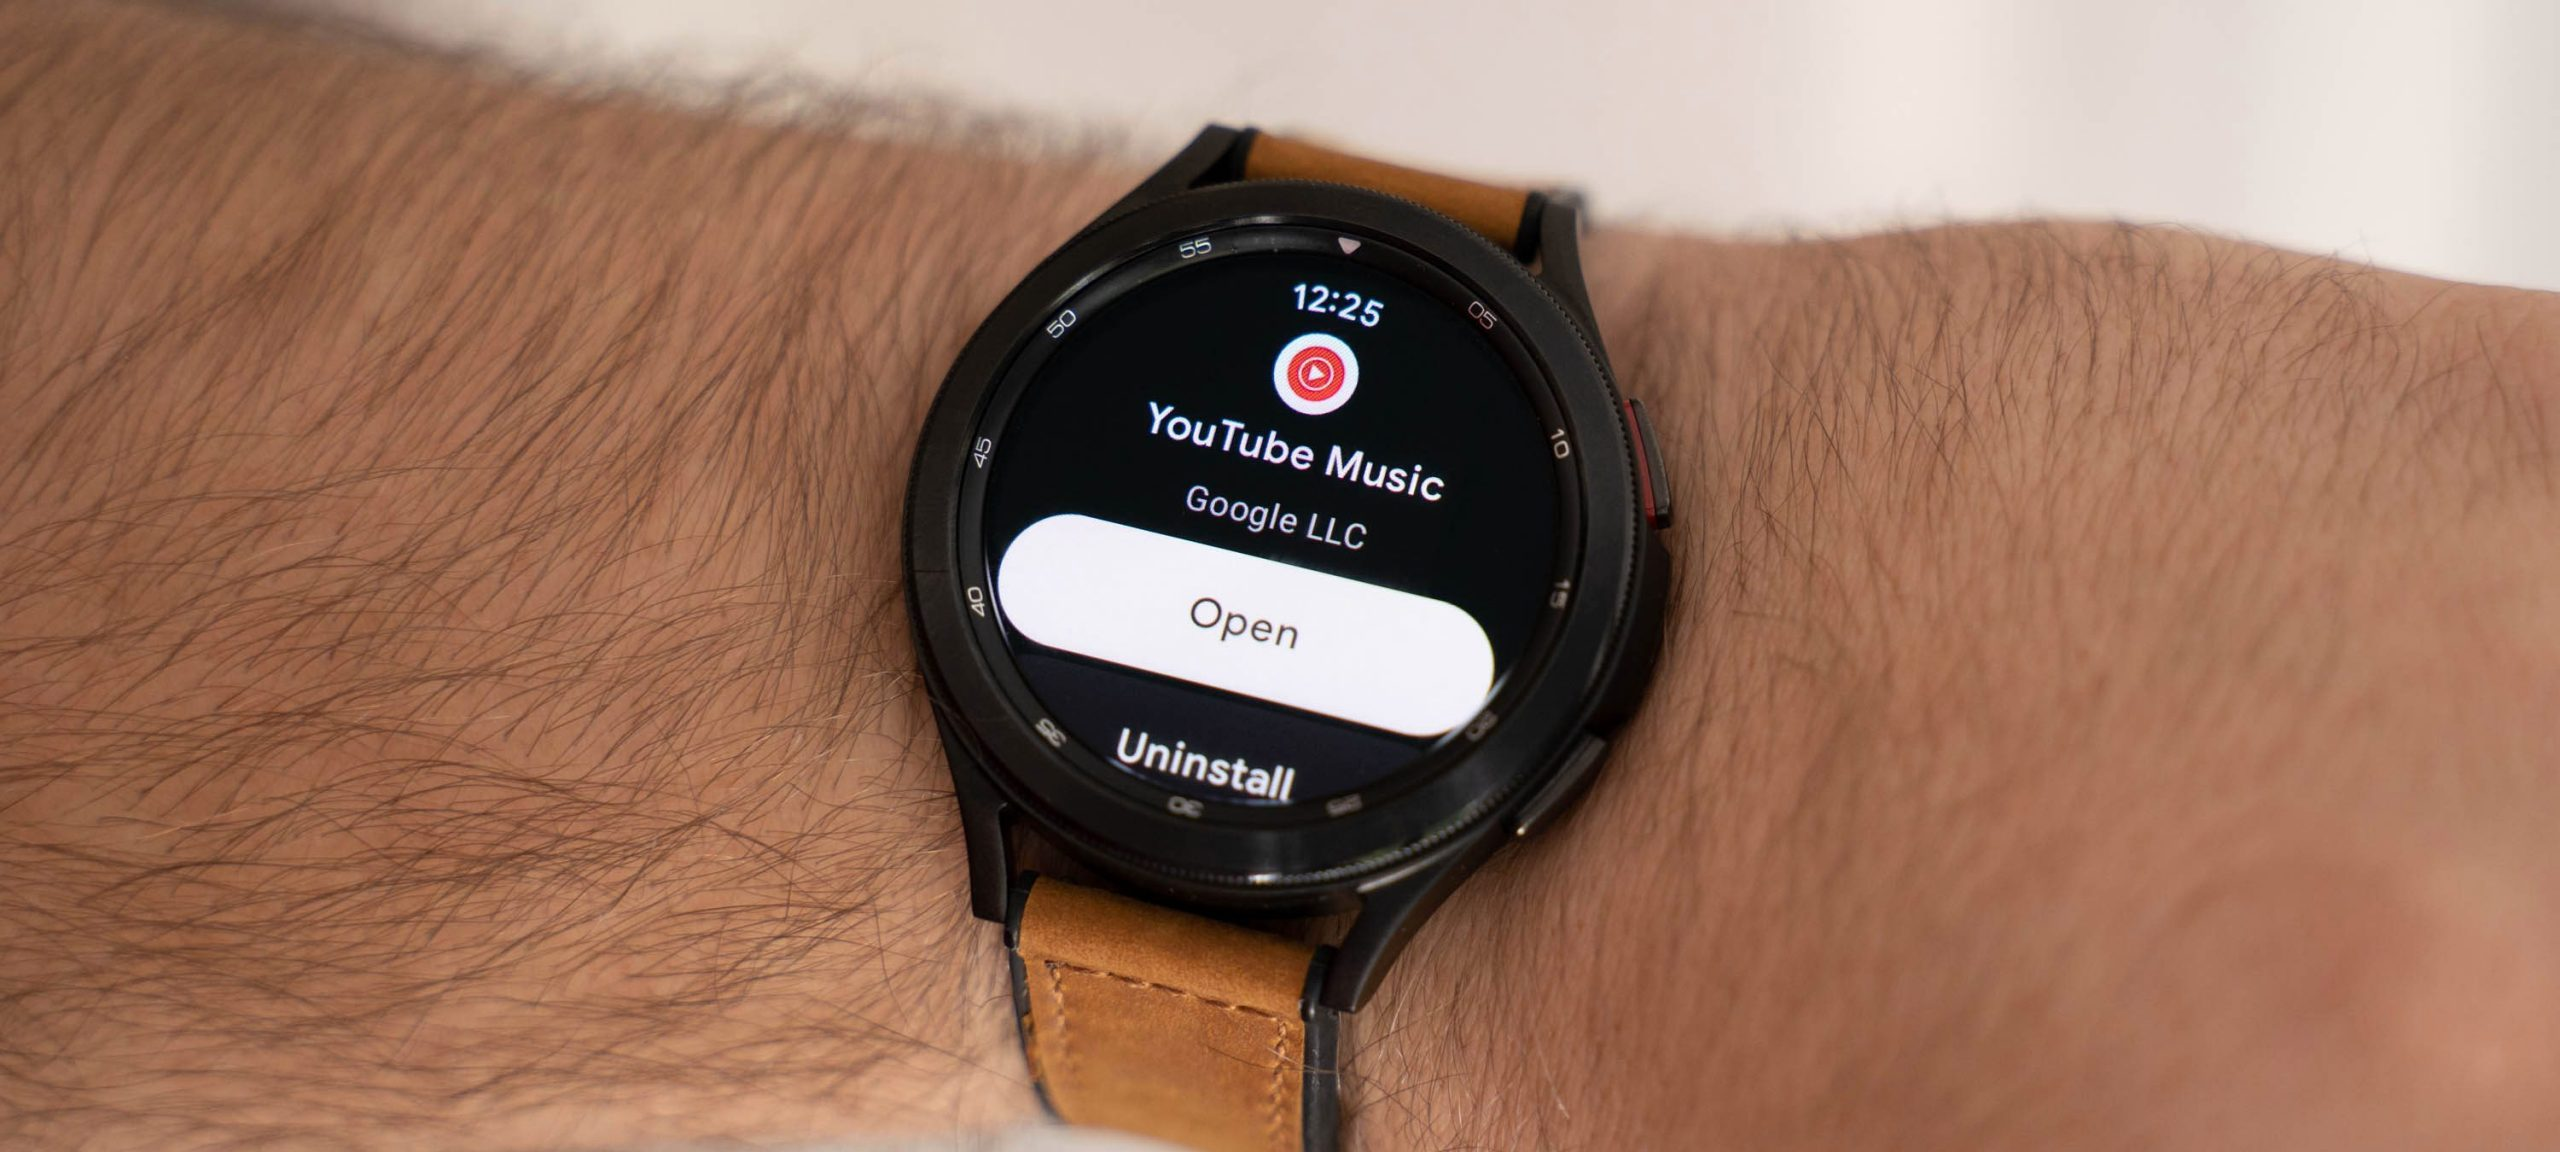 Read more about the article Youtube Music Wear OS App is, at last, coming by Google